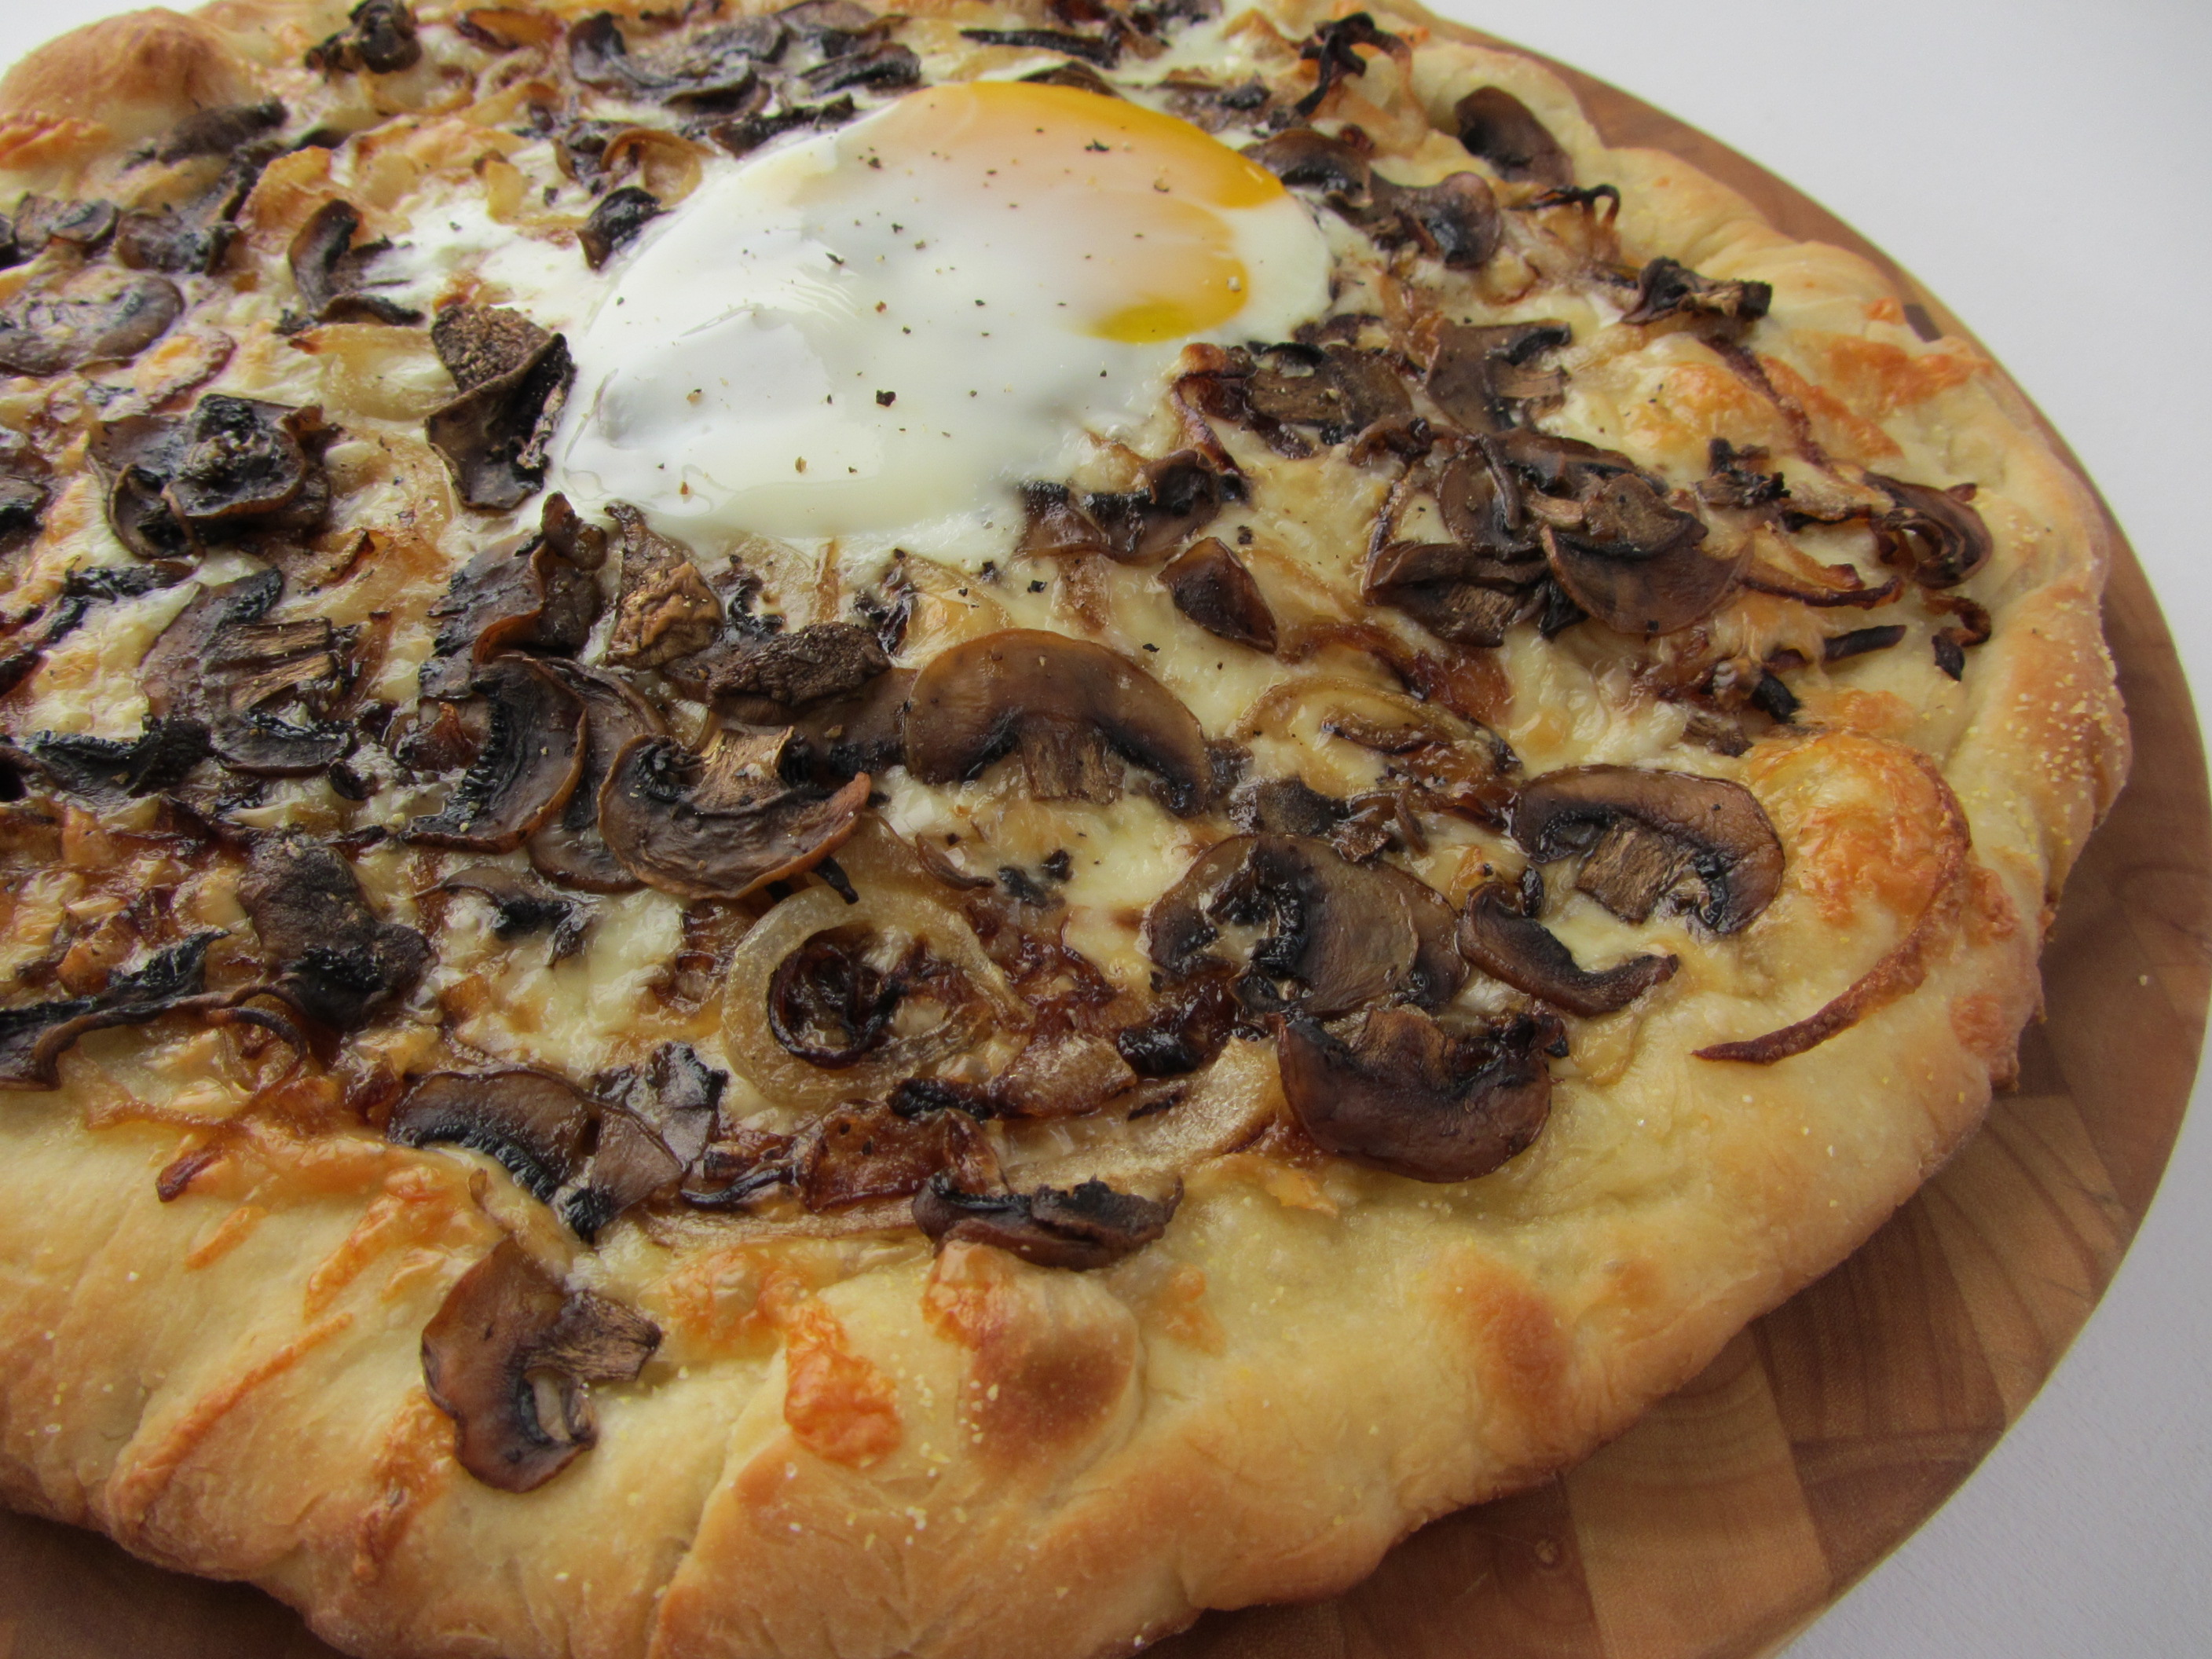 Caramelized Onion and Mushroom Pizza with Truffle Oil and Egg | I'm ...